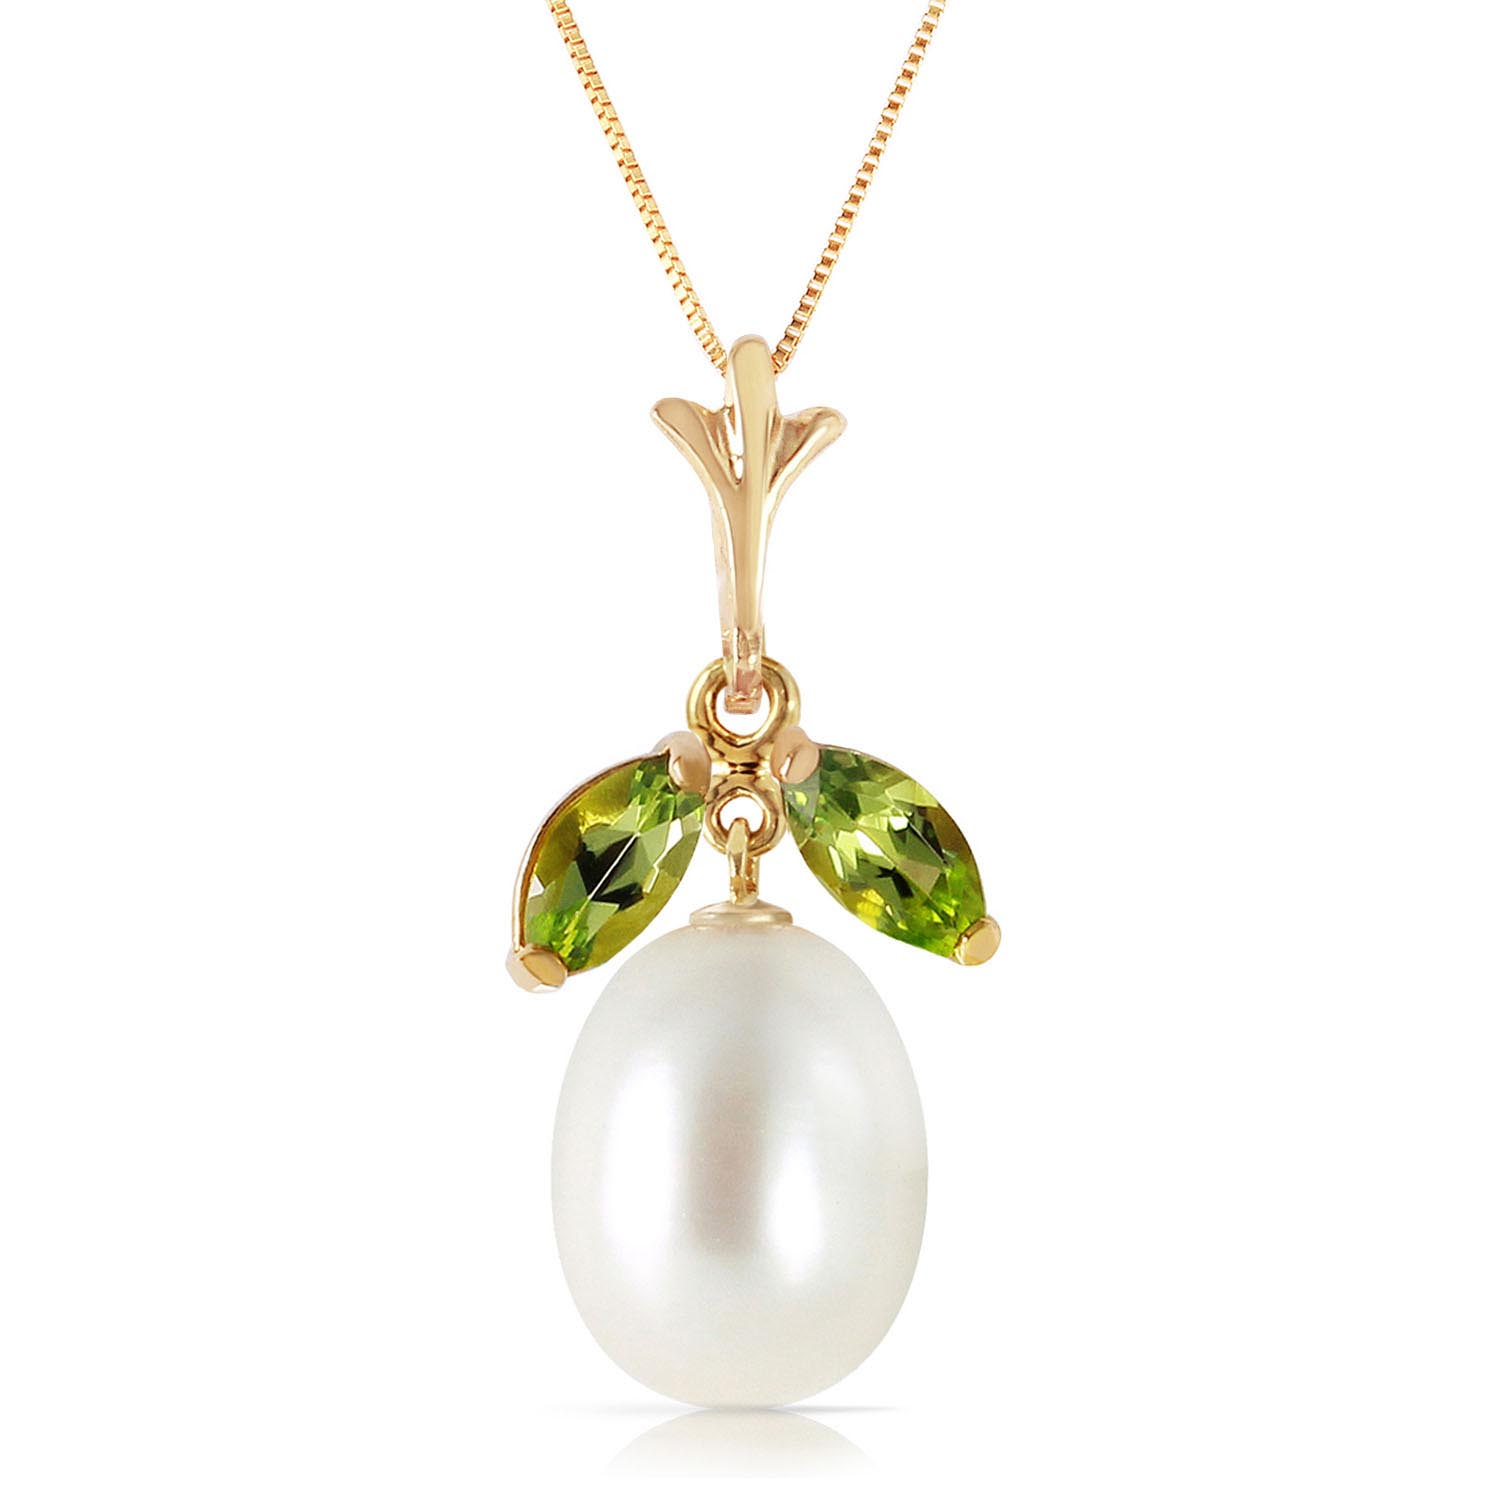 Pearl and Peridot Pendant Necklace 4.5ctw in 9ct Gold 3111Y